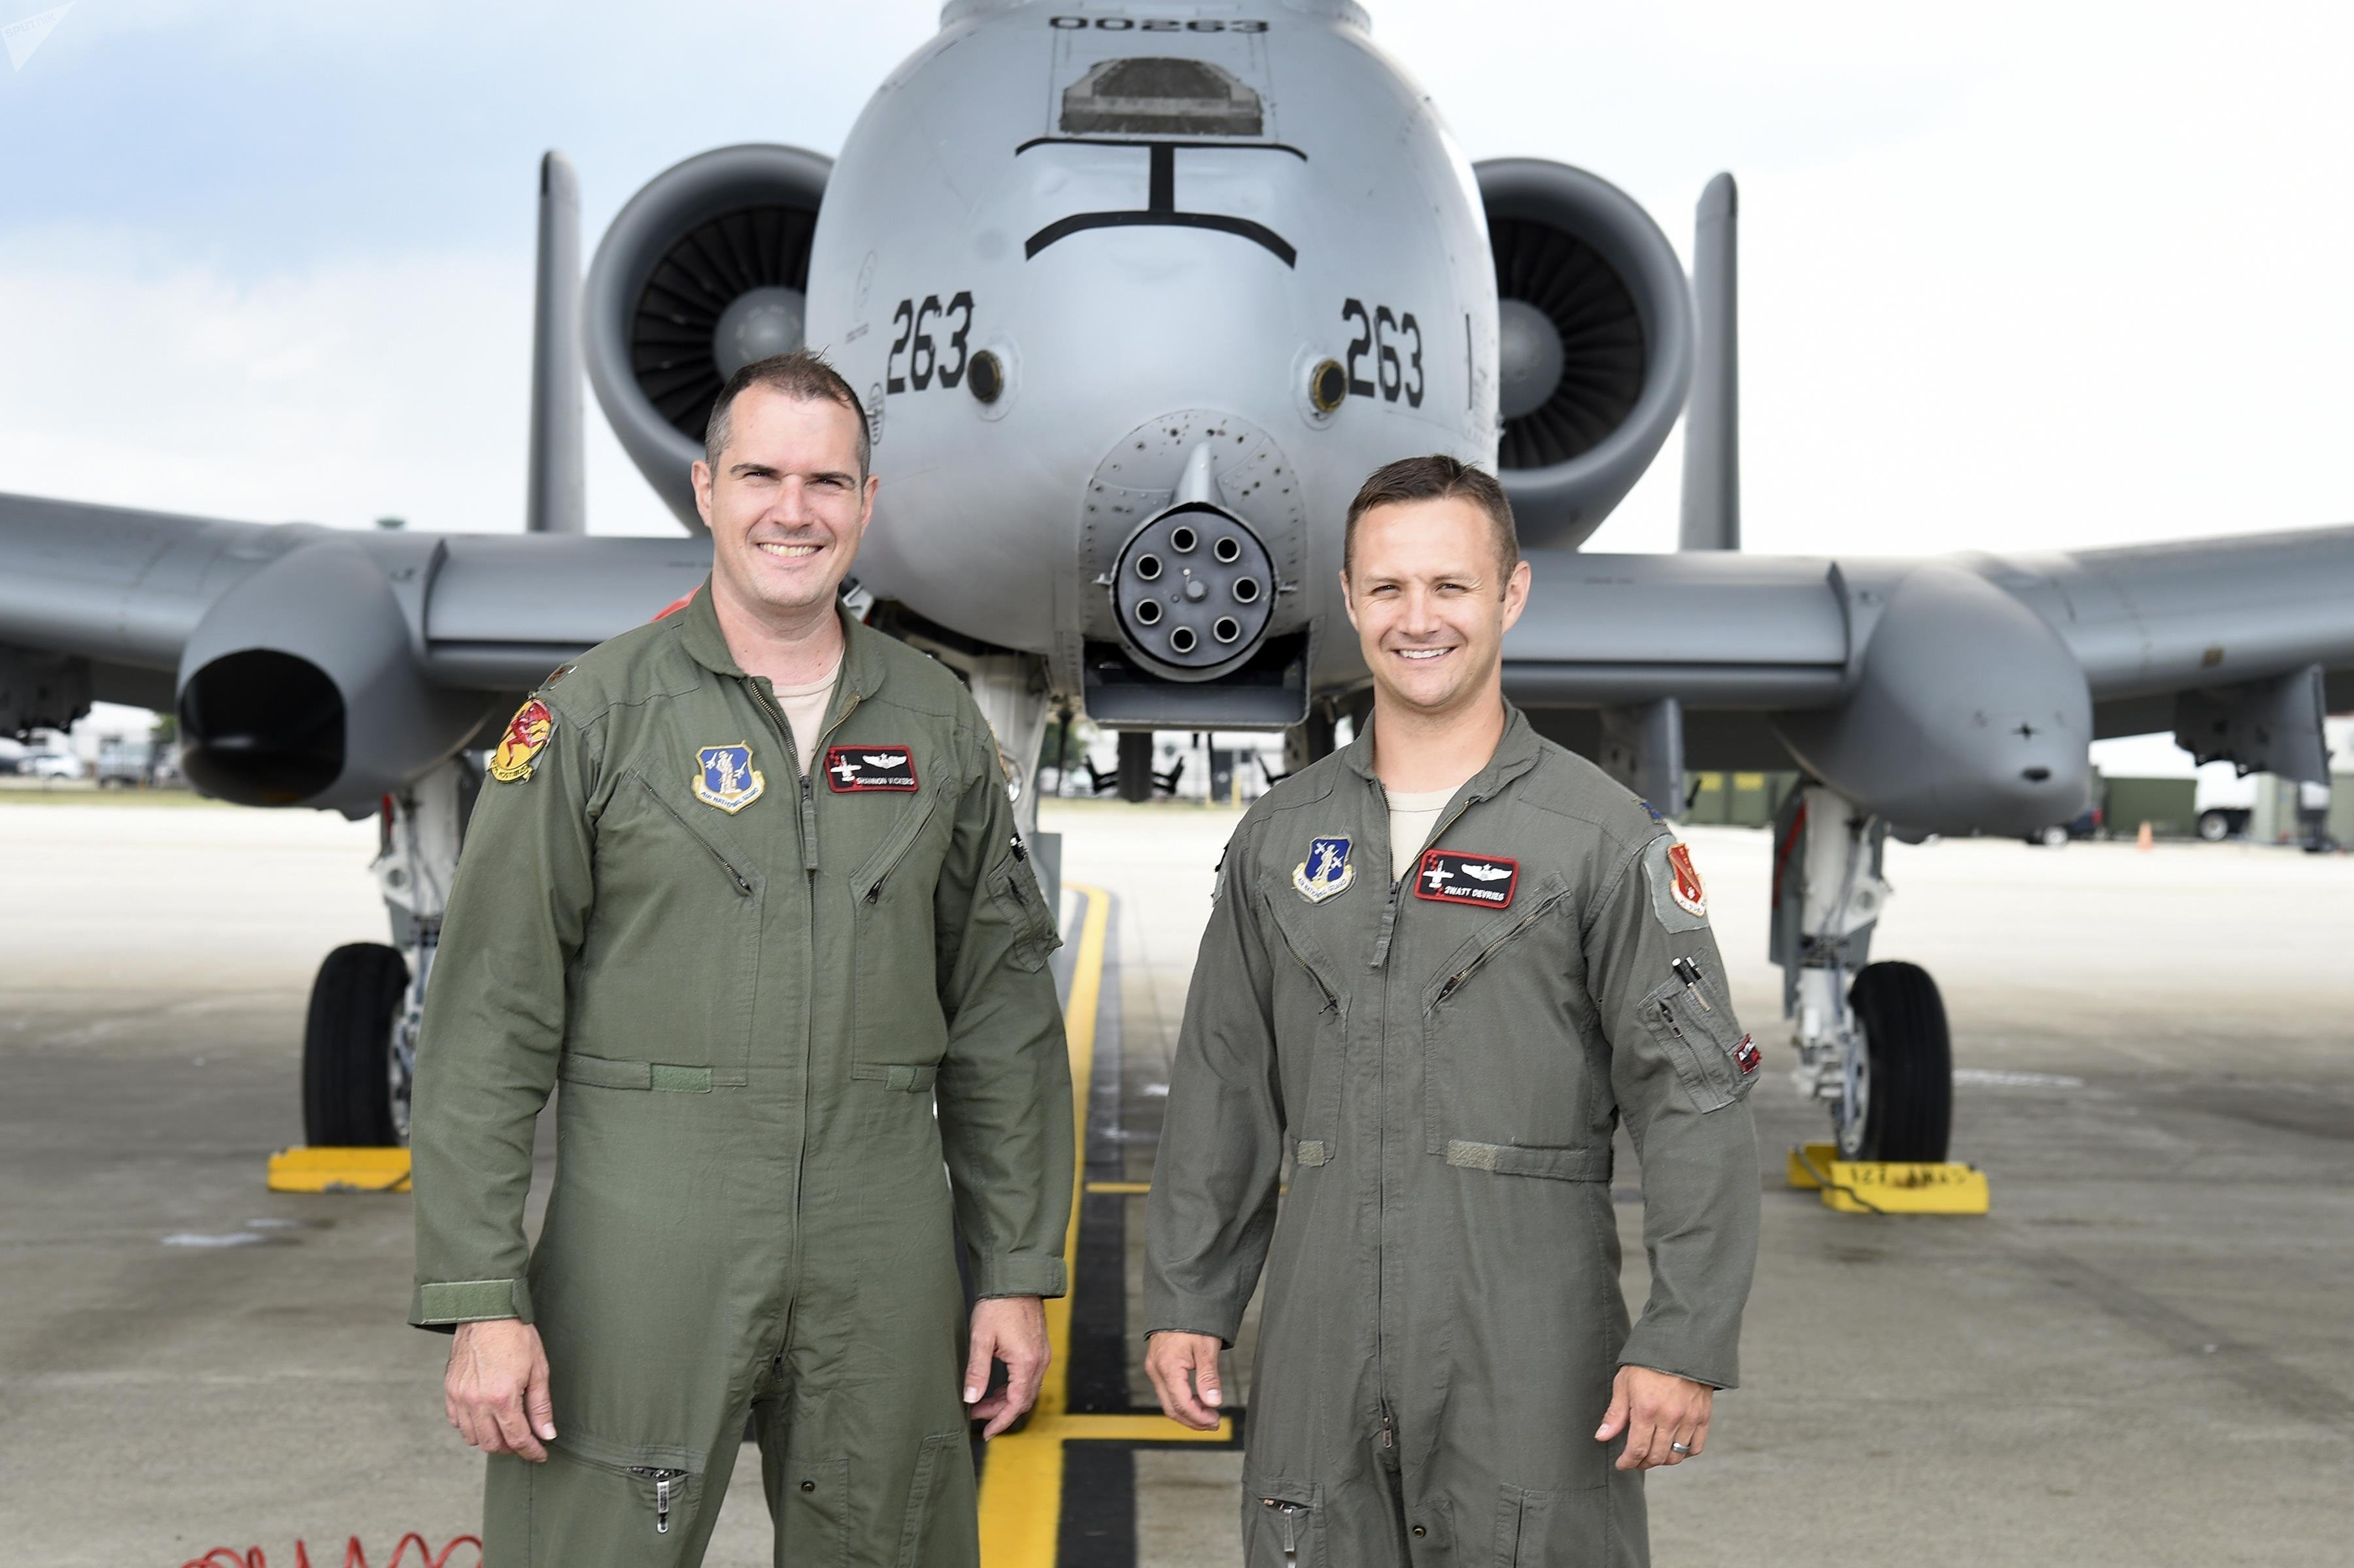 Capt. Brett DeVries (right) and his wingman Maj. Shannon Vickers, both A-10 Thunderbolt II pilots of the 107th Fighter Squadron from Selfridge Air National Guard Base, Mich. Vickers helped DeVries safely make an emergency landing July 20 at the Alpena Combat Readiness Training Center after the A-10 DeVries was flying experienced a malfunction